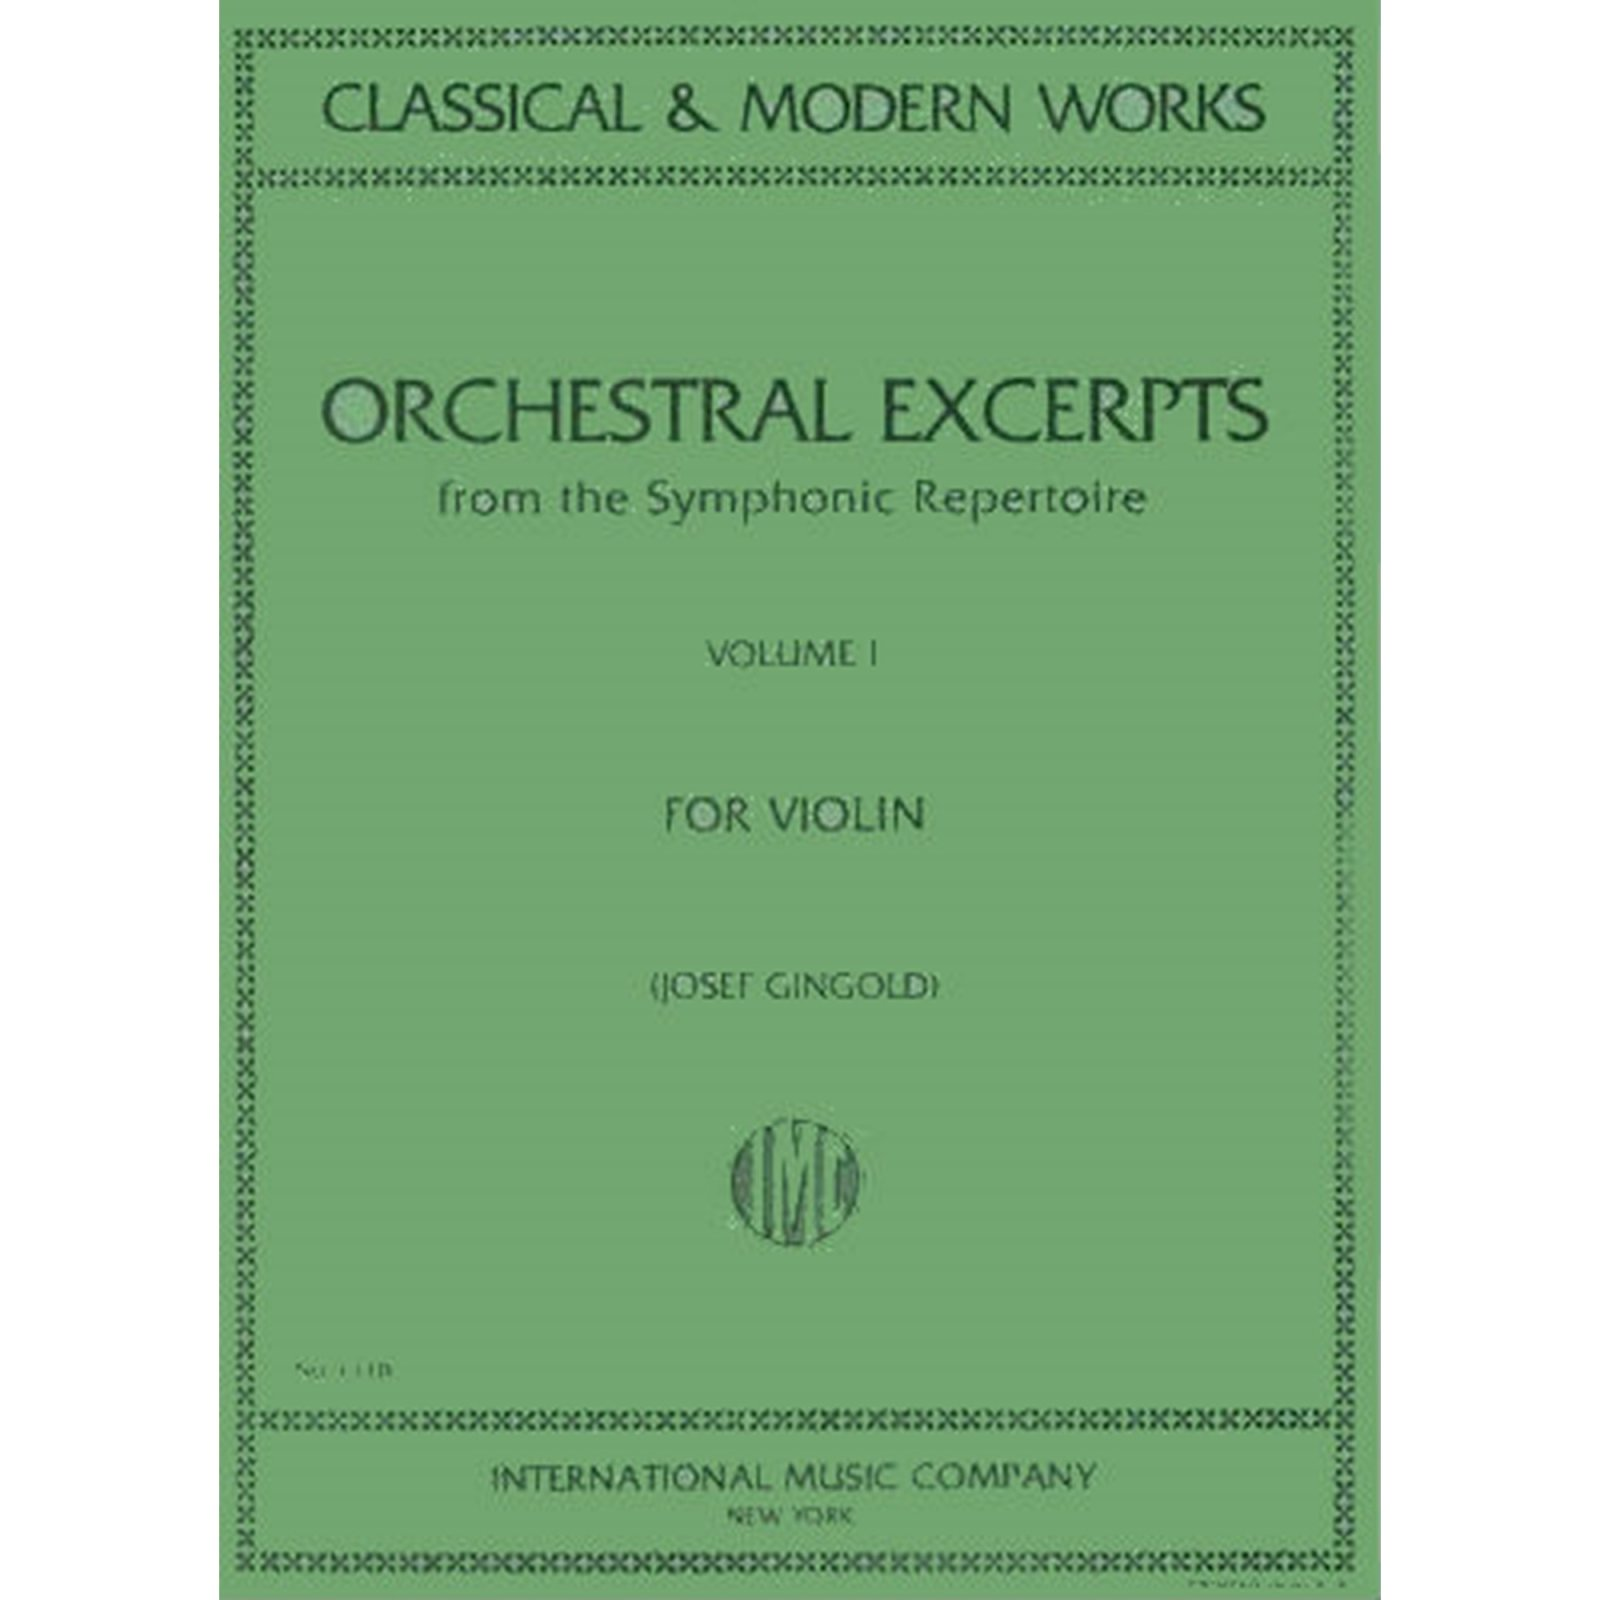 Orchestral Excerpts Vol. 1 Ed. Gingold